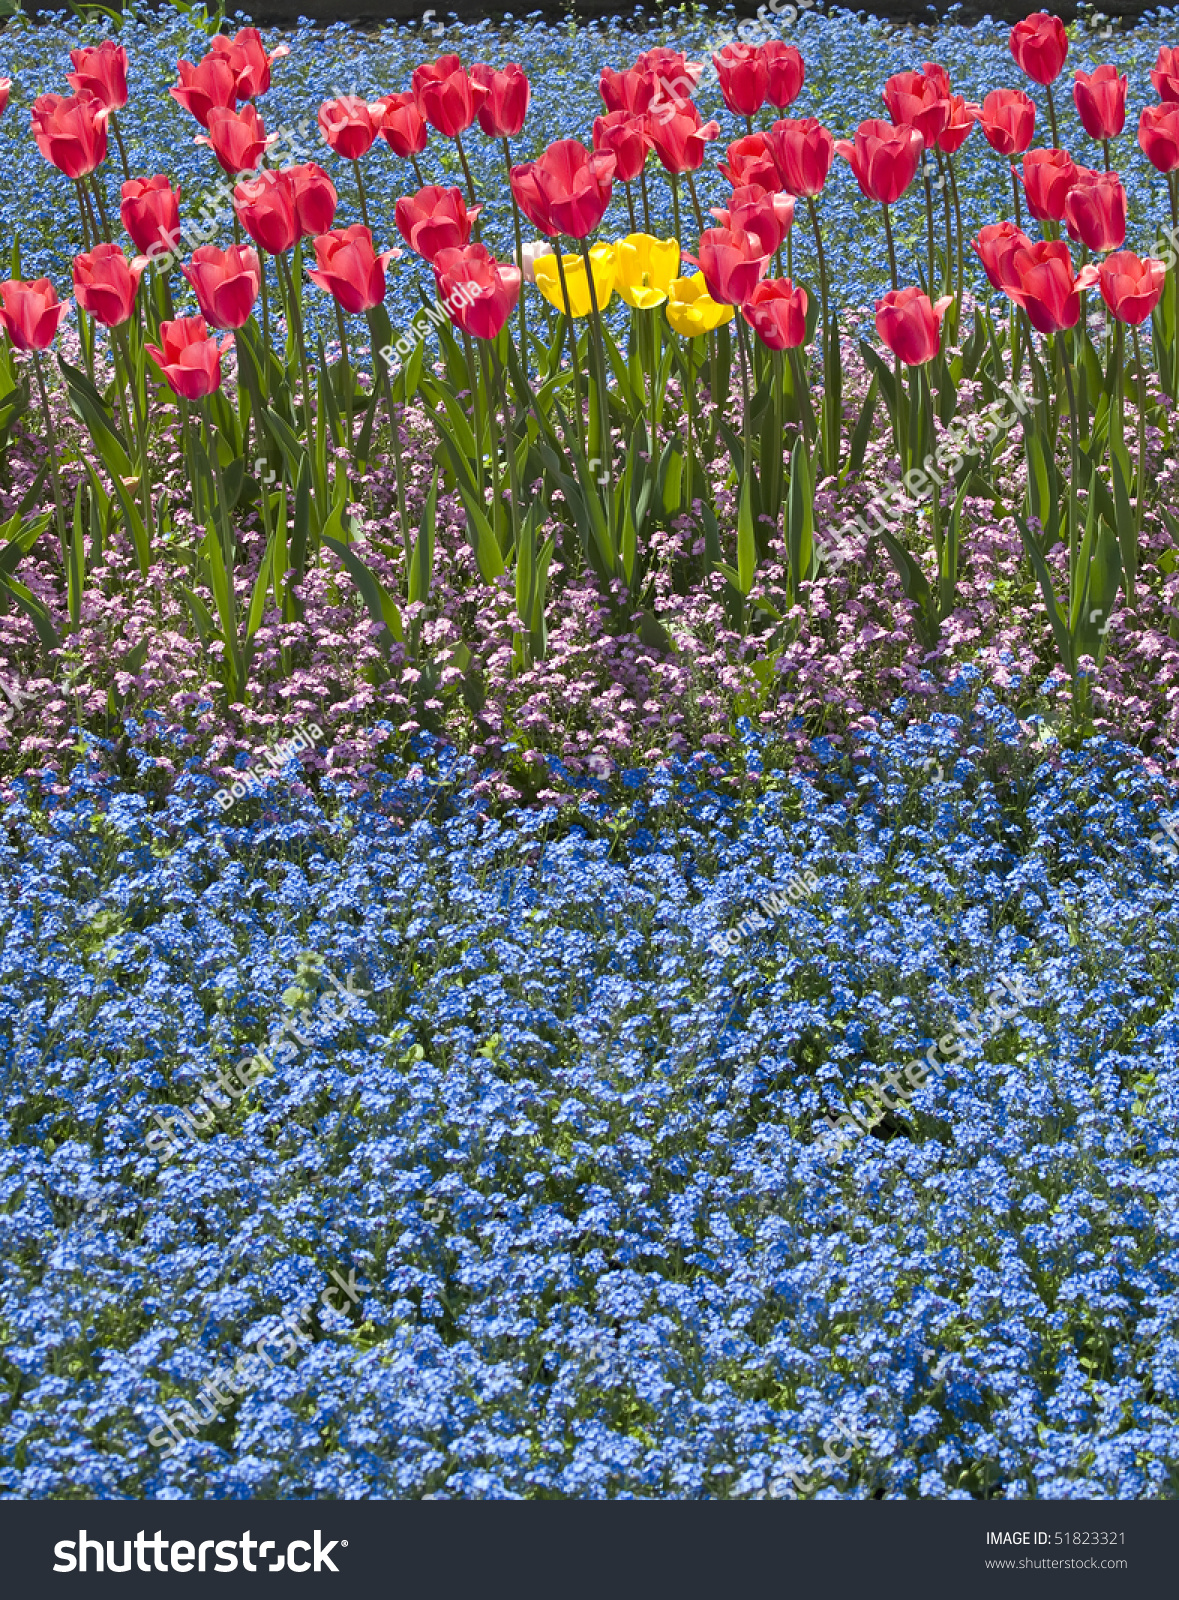 Flower Bed Of Small Blue And Pink Flowers With Red And